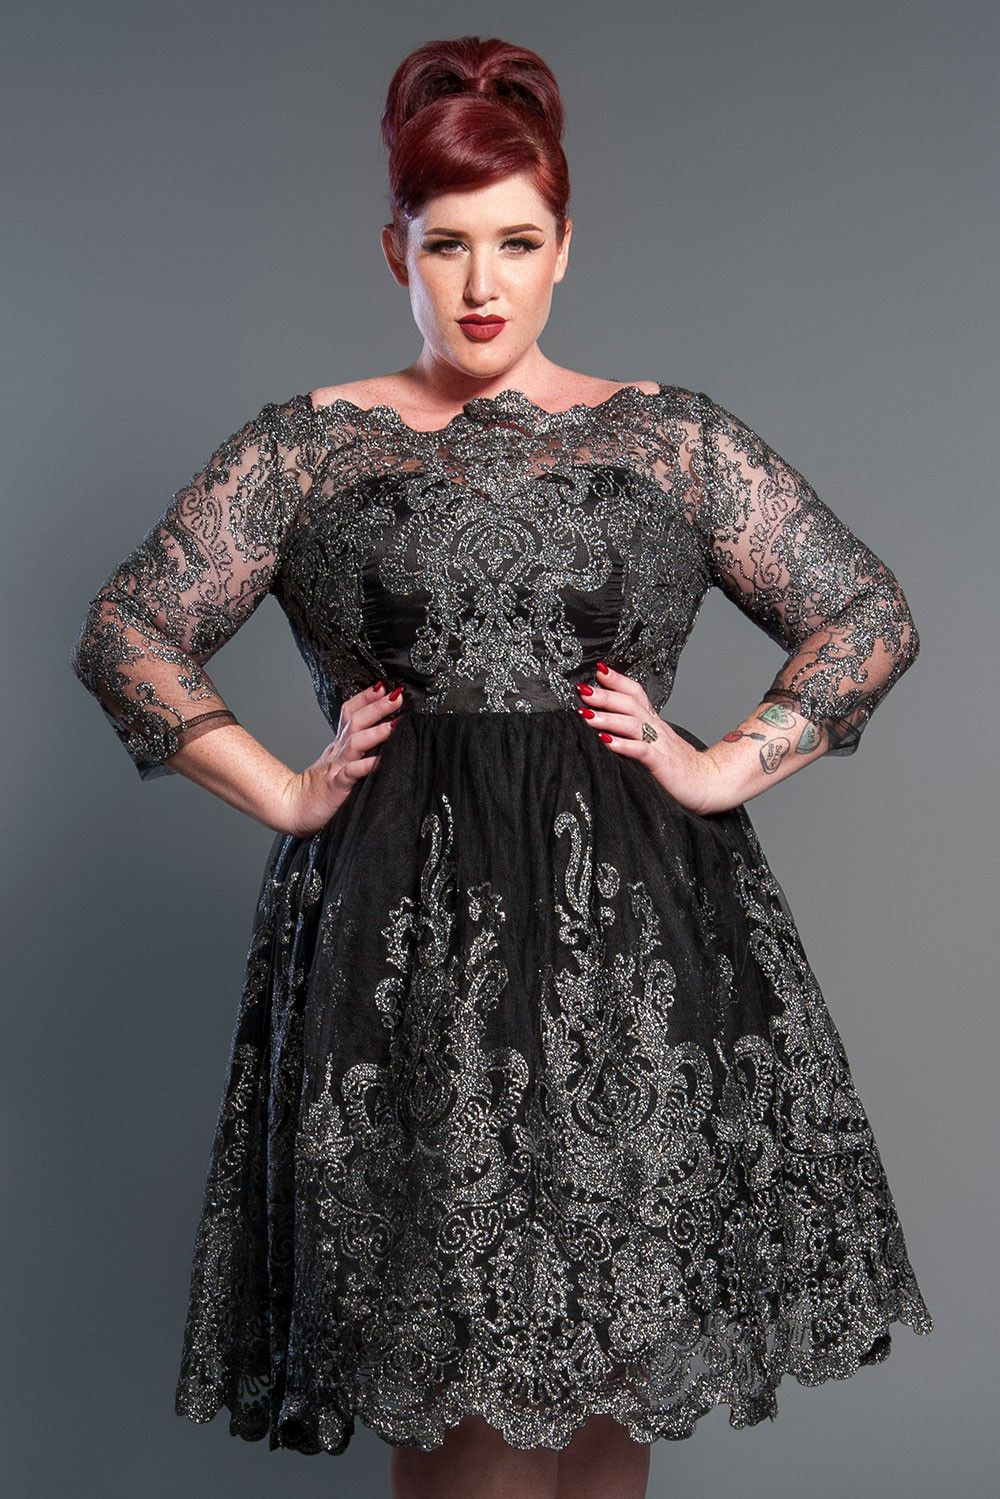 Httpspinupgirlclothingplus size vintage inspired plus size lottie cocktail dress ombrellifo Gallery